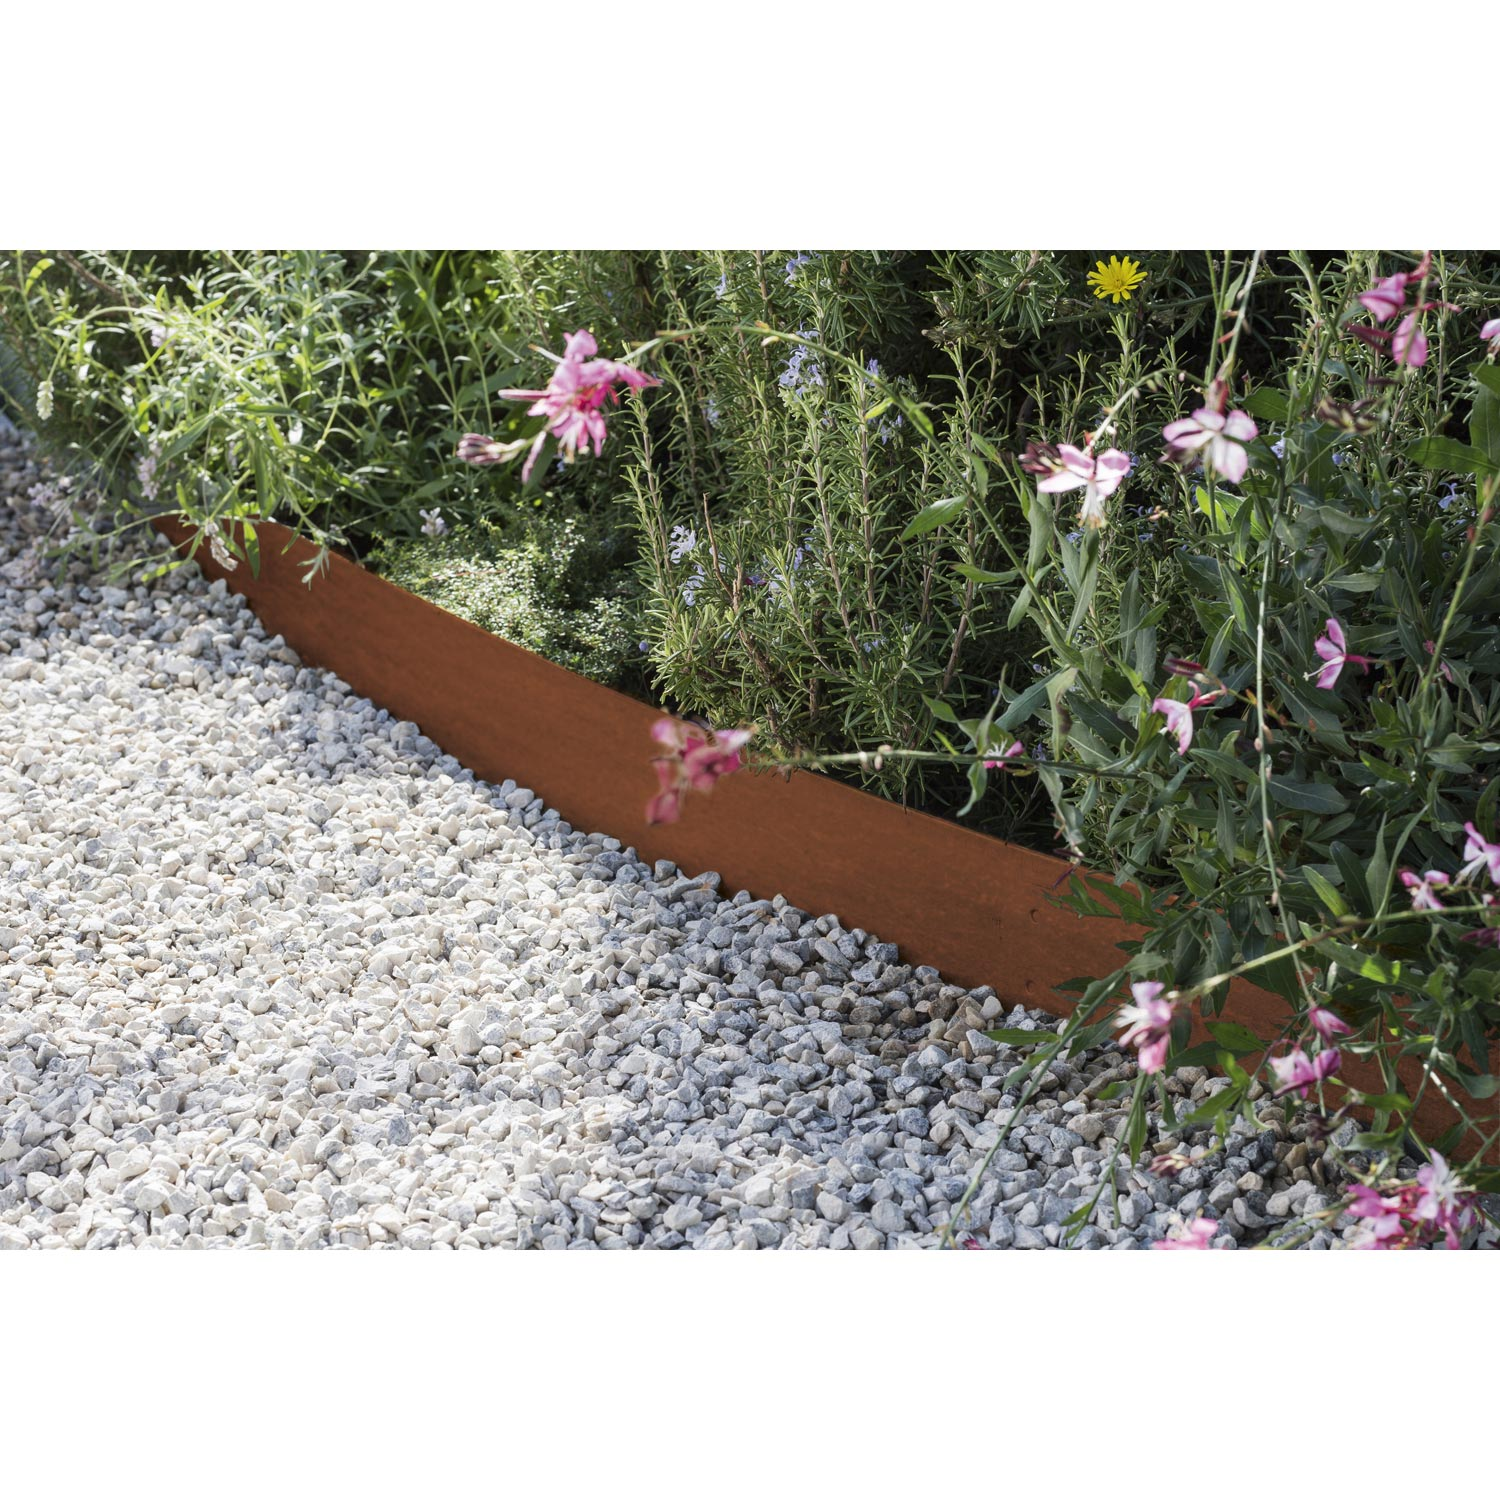 Bordure planter aspect rouille acier galvanis gris h for Bordure jardin acier corten